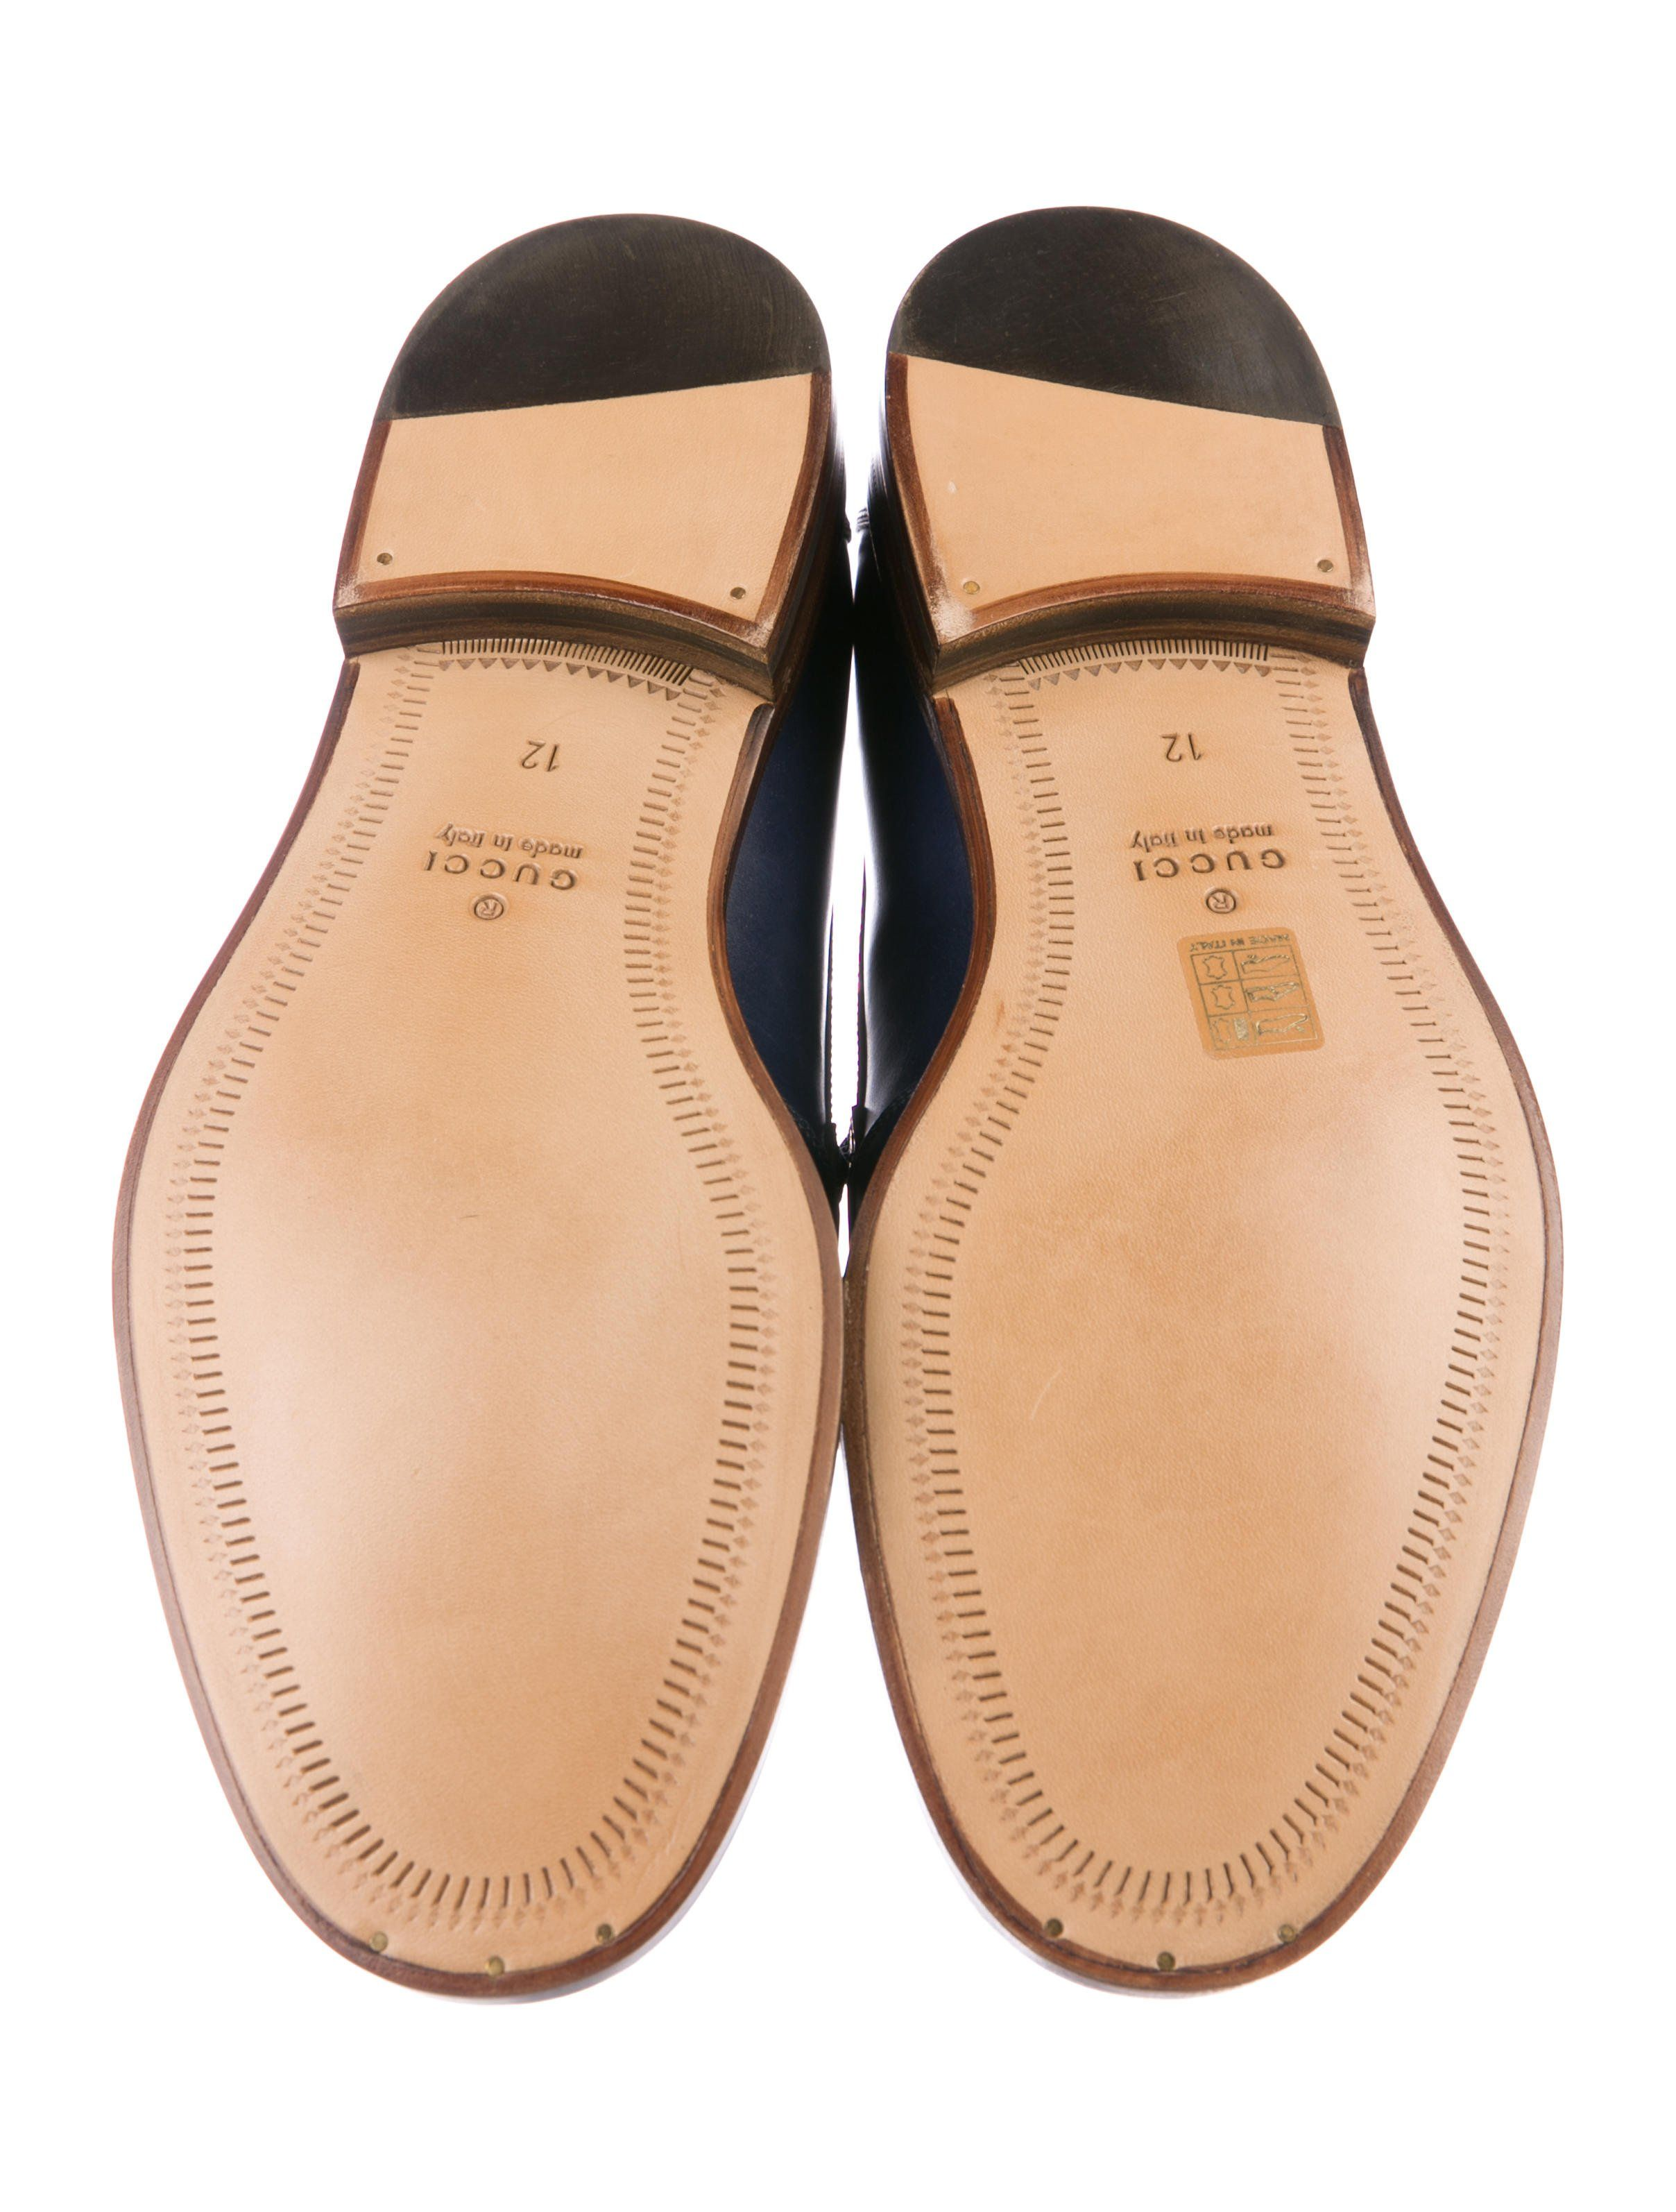 f38e23144ae Men s navy leather Gucci round-toe penny loafers with Web trim at counters  and stacked heels. Includes box and dust bag.